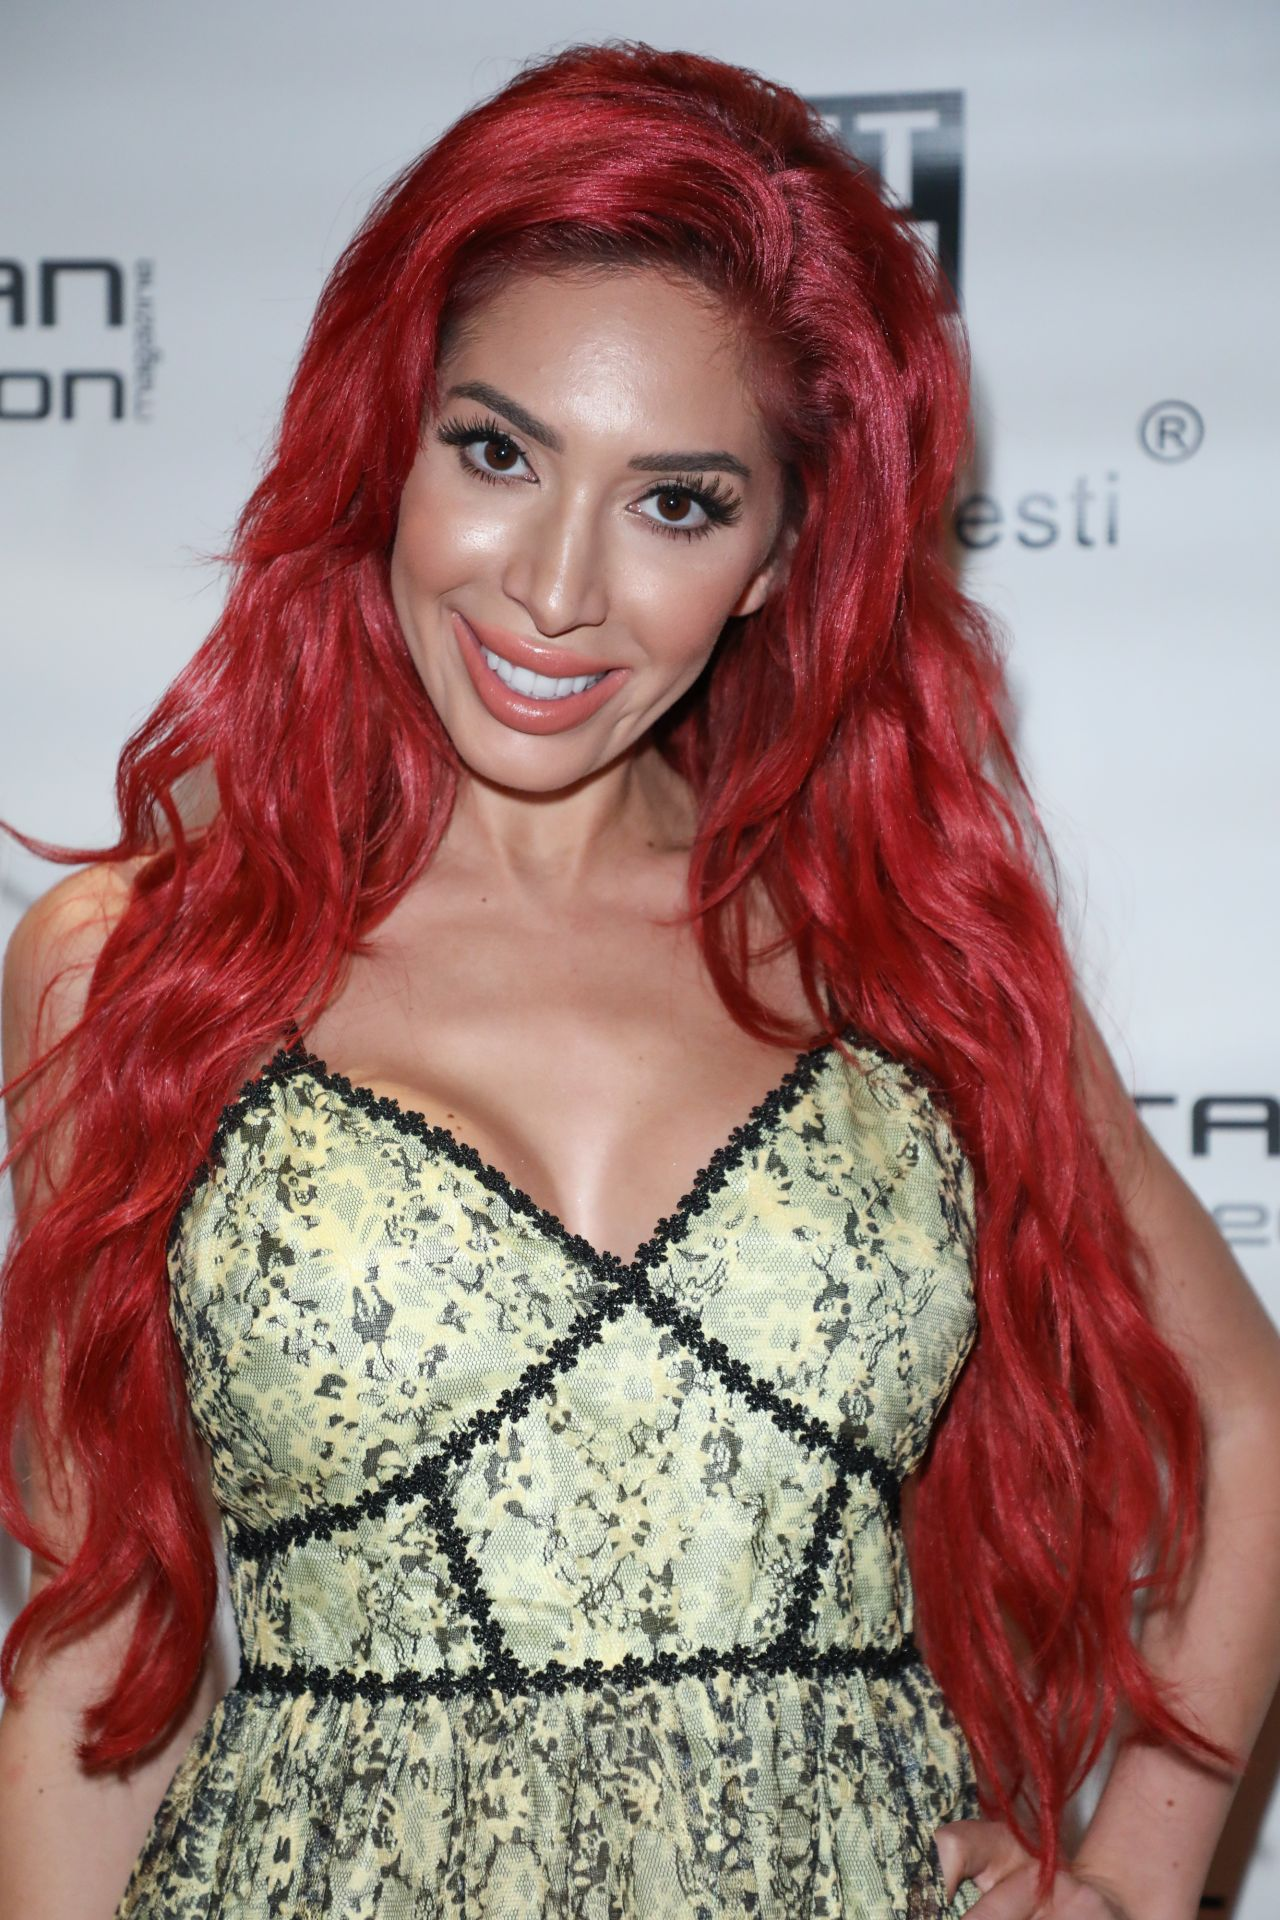 farrah-abraham-metropolitan-fashion-week-in-la-03-29-2018-3.jpg